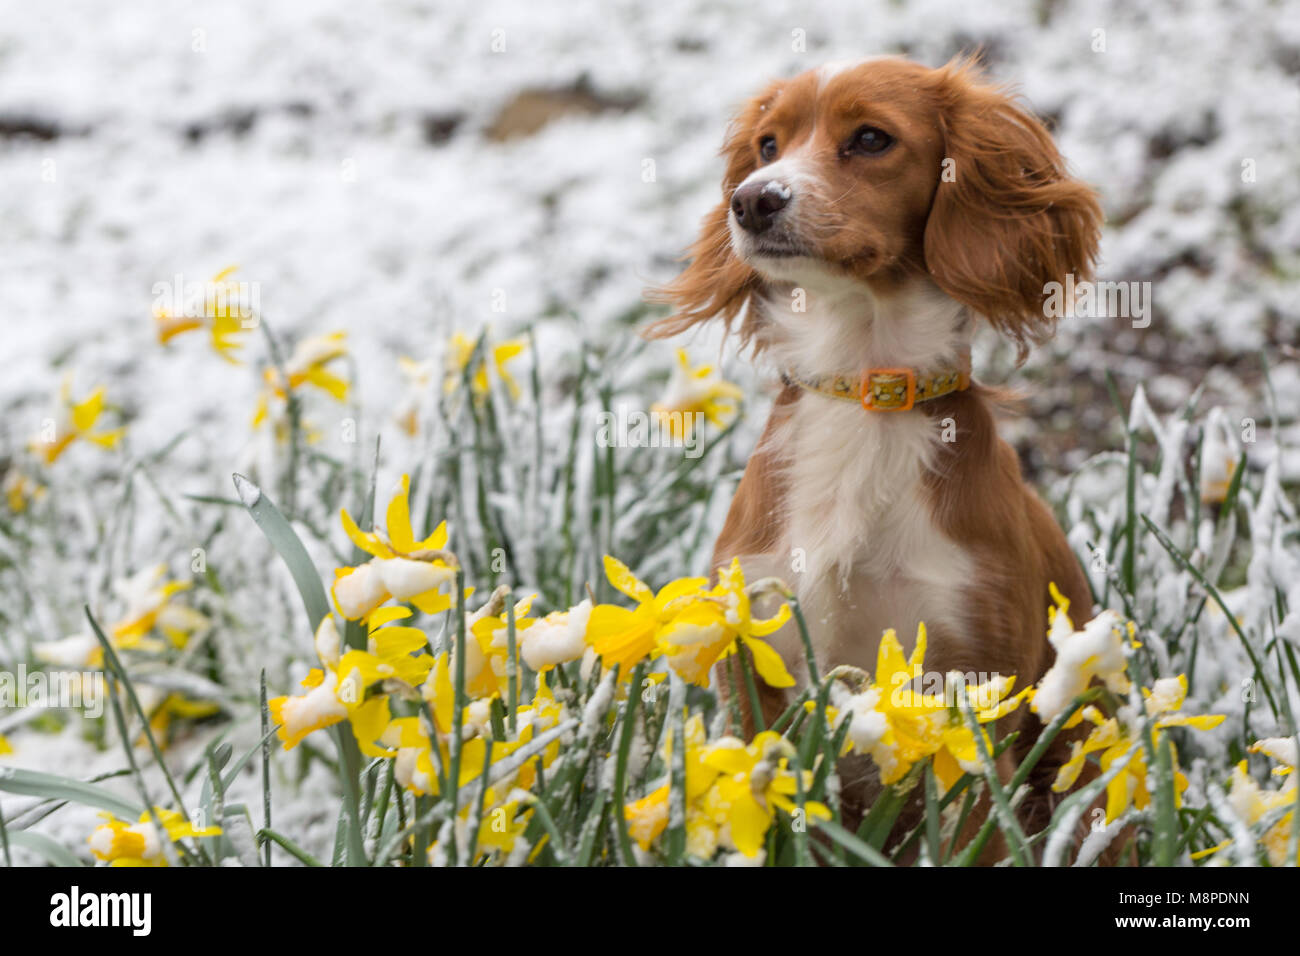 11 month old cockapoo Pip pictured in snowy daffodils in Gravesend, Kent. - Stock Image